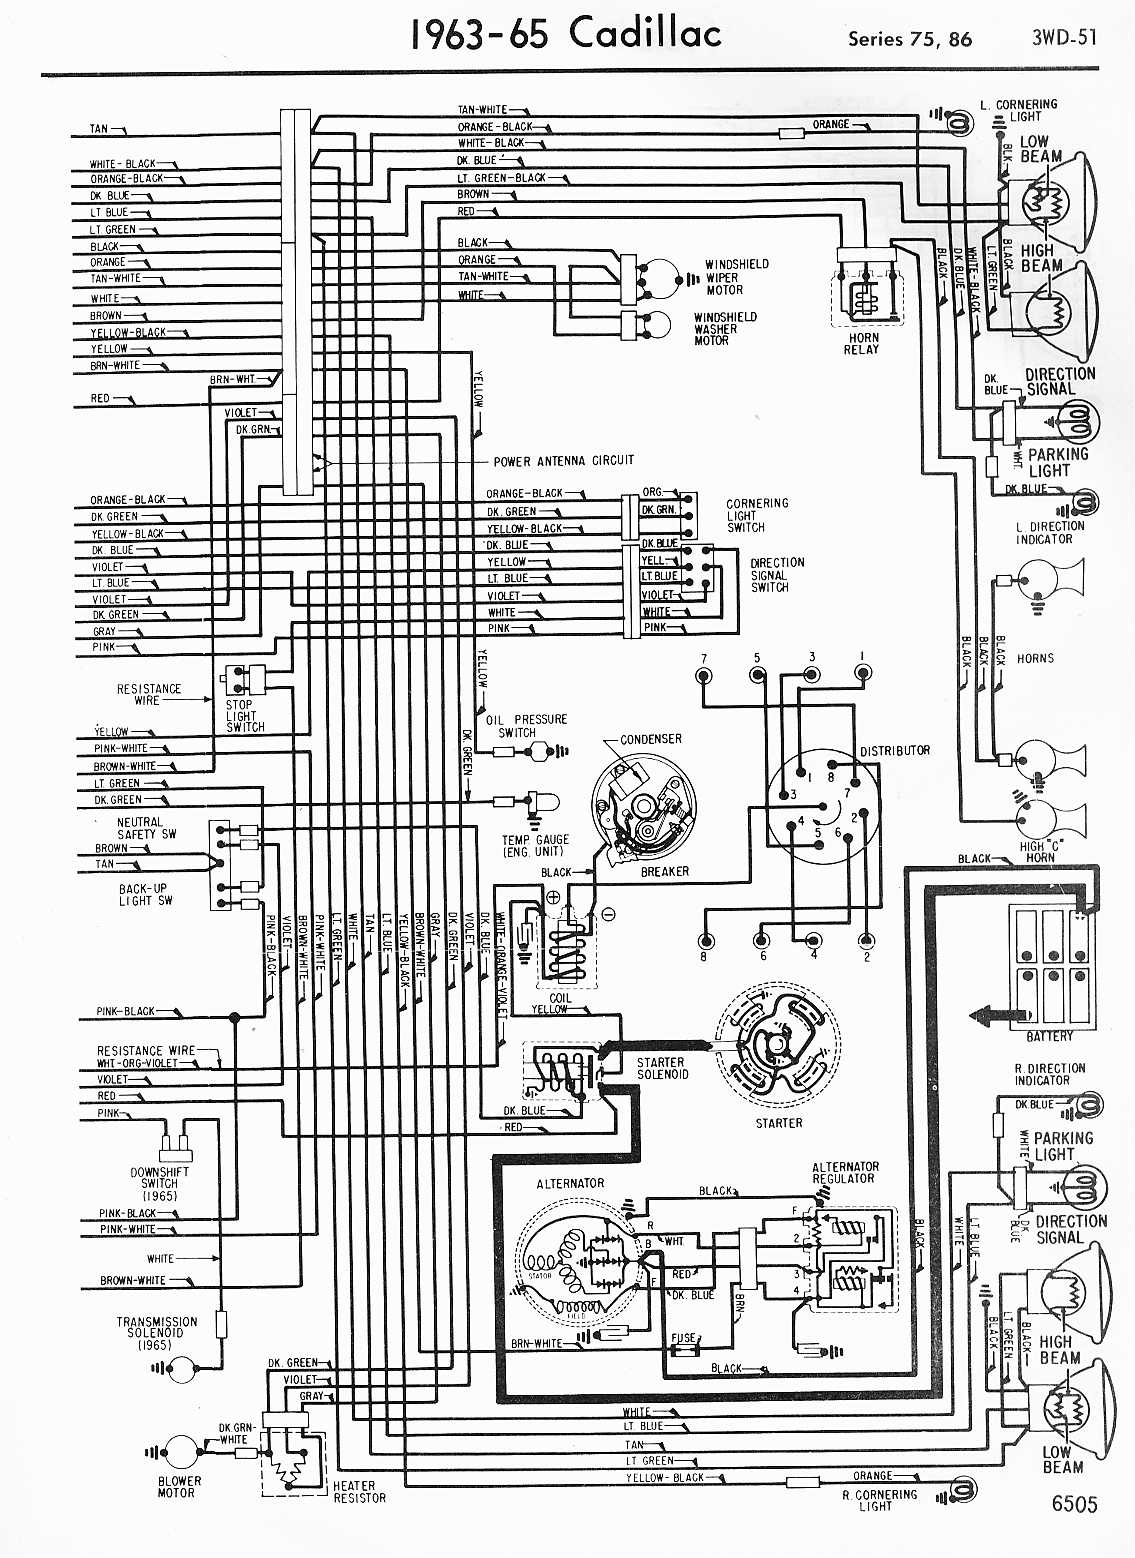 Dodge Ram 3500 Thermostat Location moreover 4 Wire Alternator Wiring Diagram 1998 Deville together with 1995 Honda Accord Fuse Box Diagram furthermore Cadillac Dts Wiring Diagram furthermore 4l60e Torque Converter Solenoid Location. on 1994 cadillac deville wiring diagram